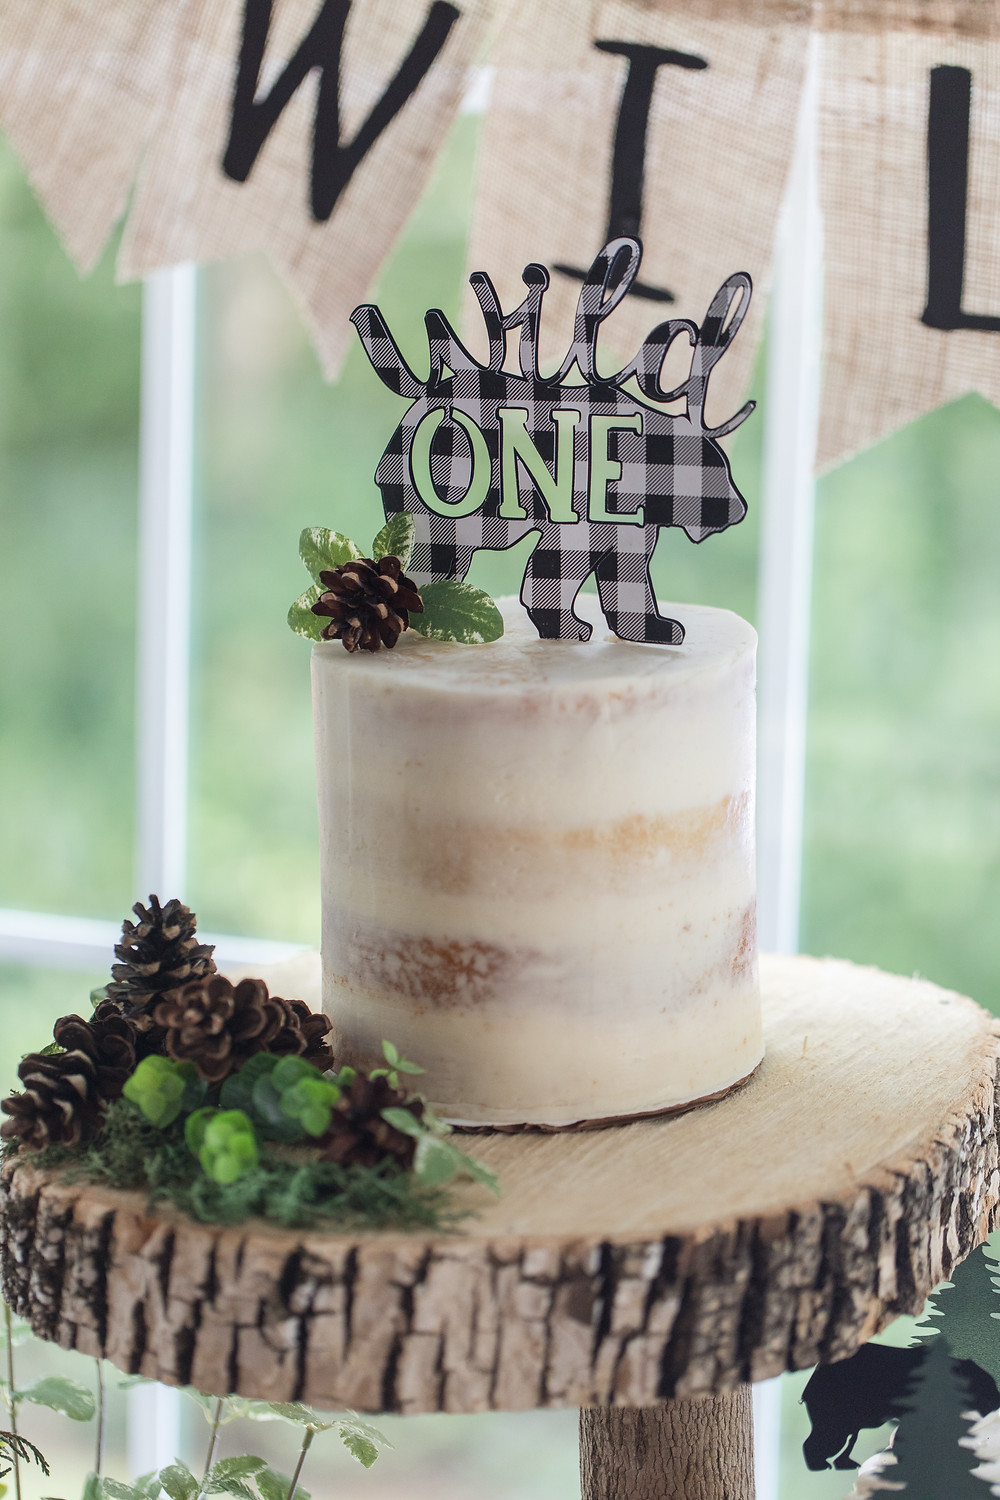 Smash Cake Semi Naked Birthday Cake - One Wild Year - Boy's 1st Birthday Party - Ideas, inspiration, decor, party food and menu, kids activities and games, cake smash photo session, bear theme, wild one wilderness theme, decorations, cake, cookies, and more!